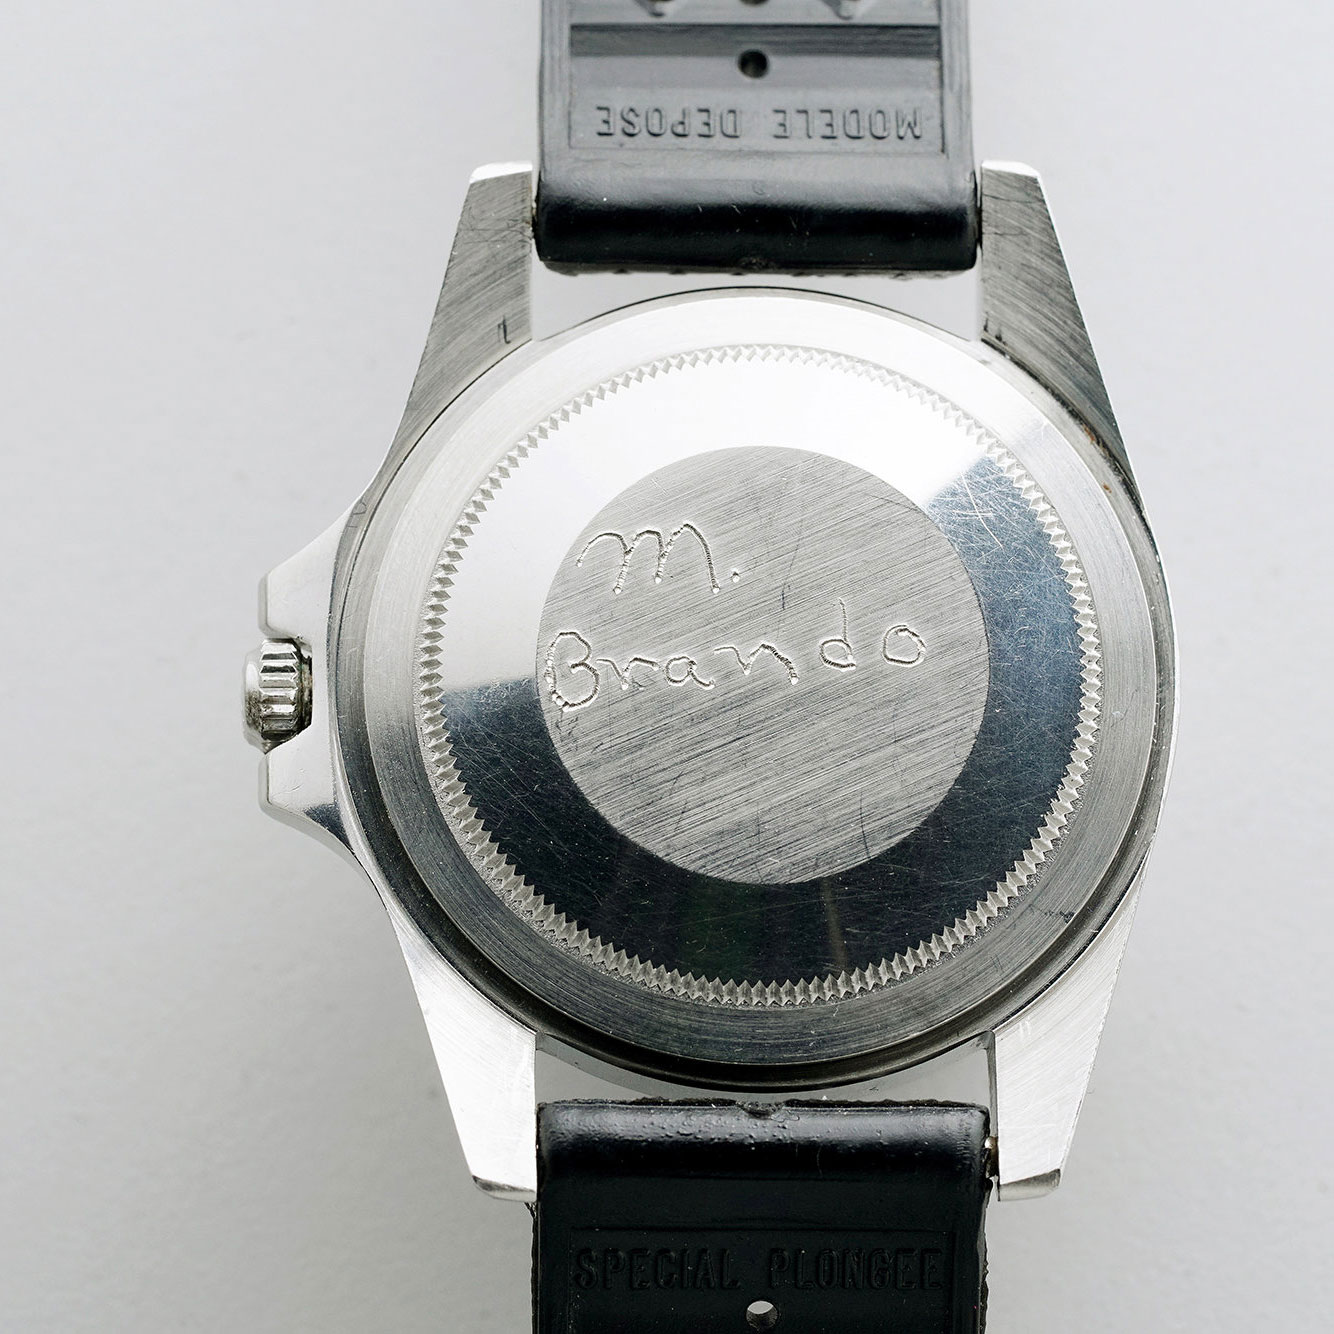 Caseback of Marlon Brando's Rolex GMT-Master 1675 from 'Apocalypse Now' (Image: phillips.com/watches)